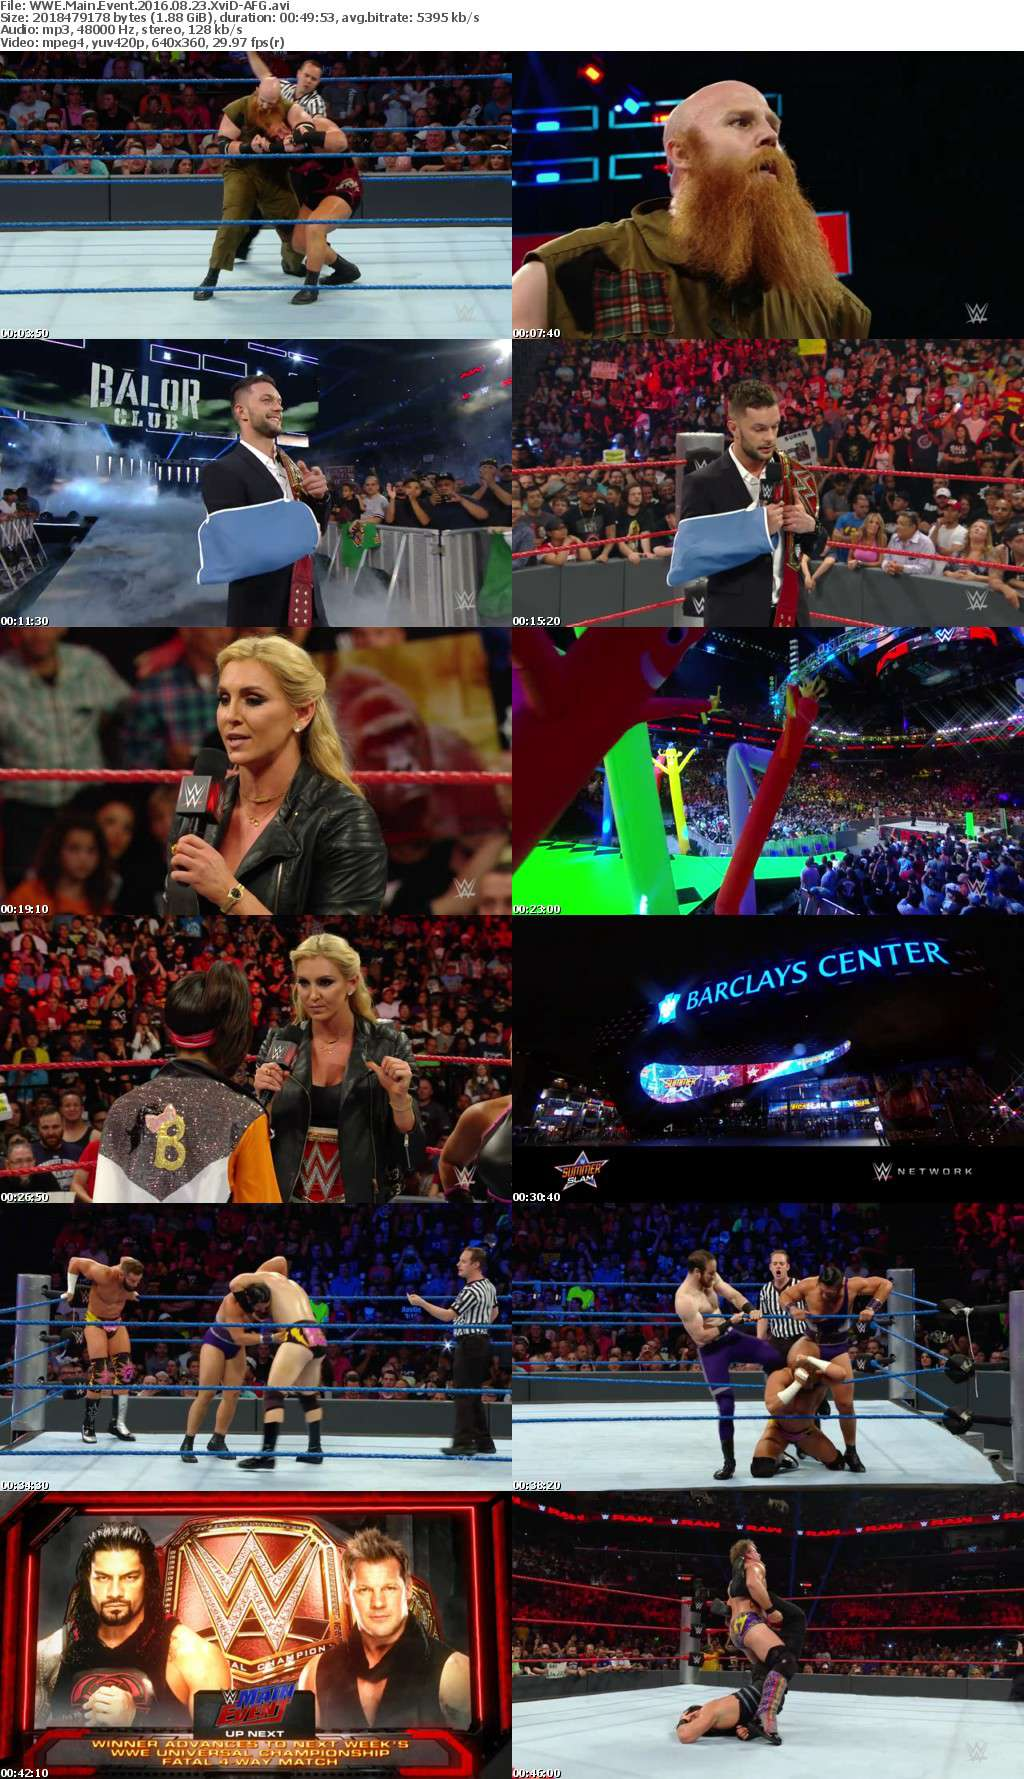 WWE Main Event 2016 08 23 XviD-AFG